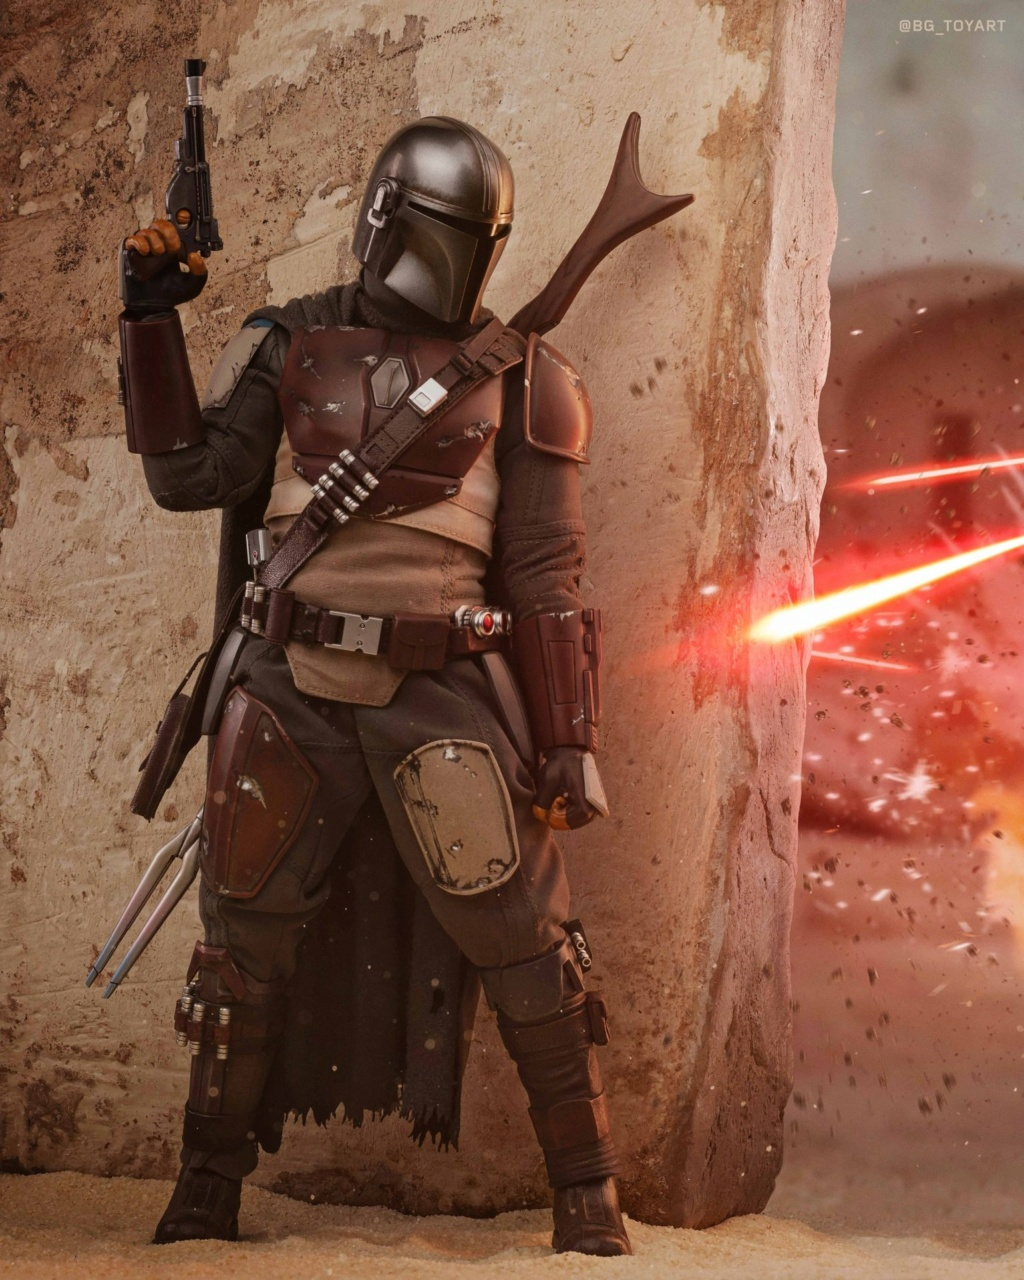 StarWars - NEW PRODUCT: HOT TOYS: THE MANDALORIAN -- THE MANDALORIAN 1/6TH SCALE COLLECTIBLE FIGURE 5367